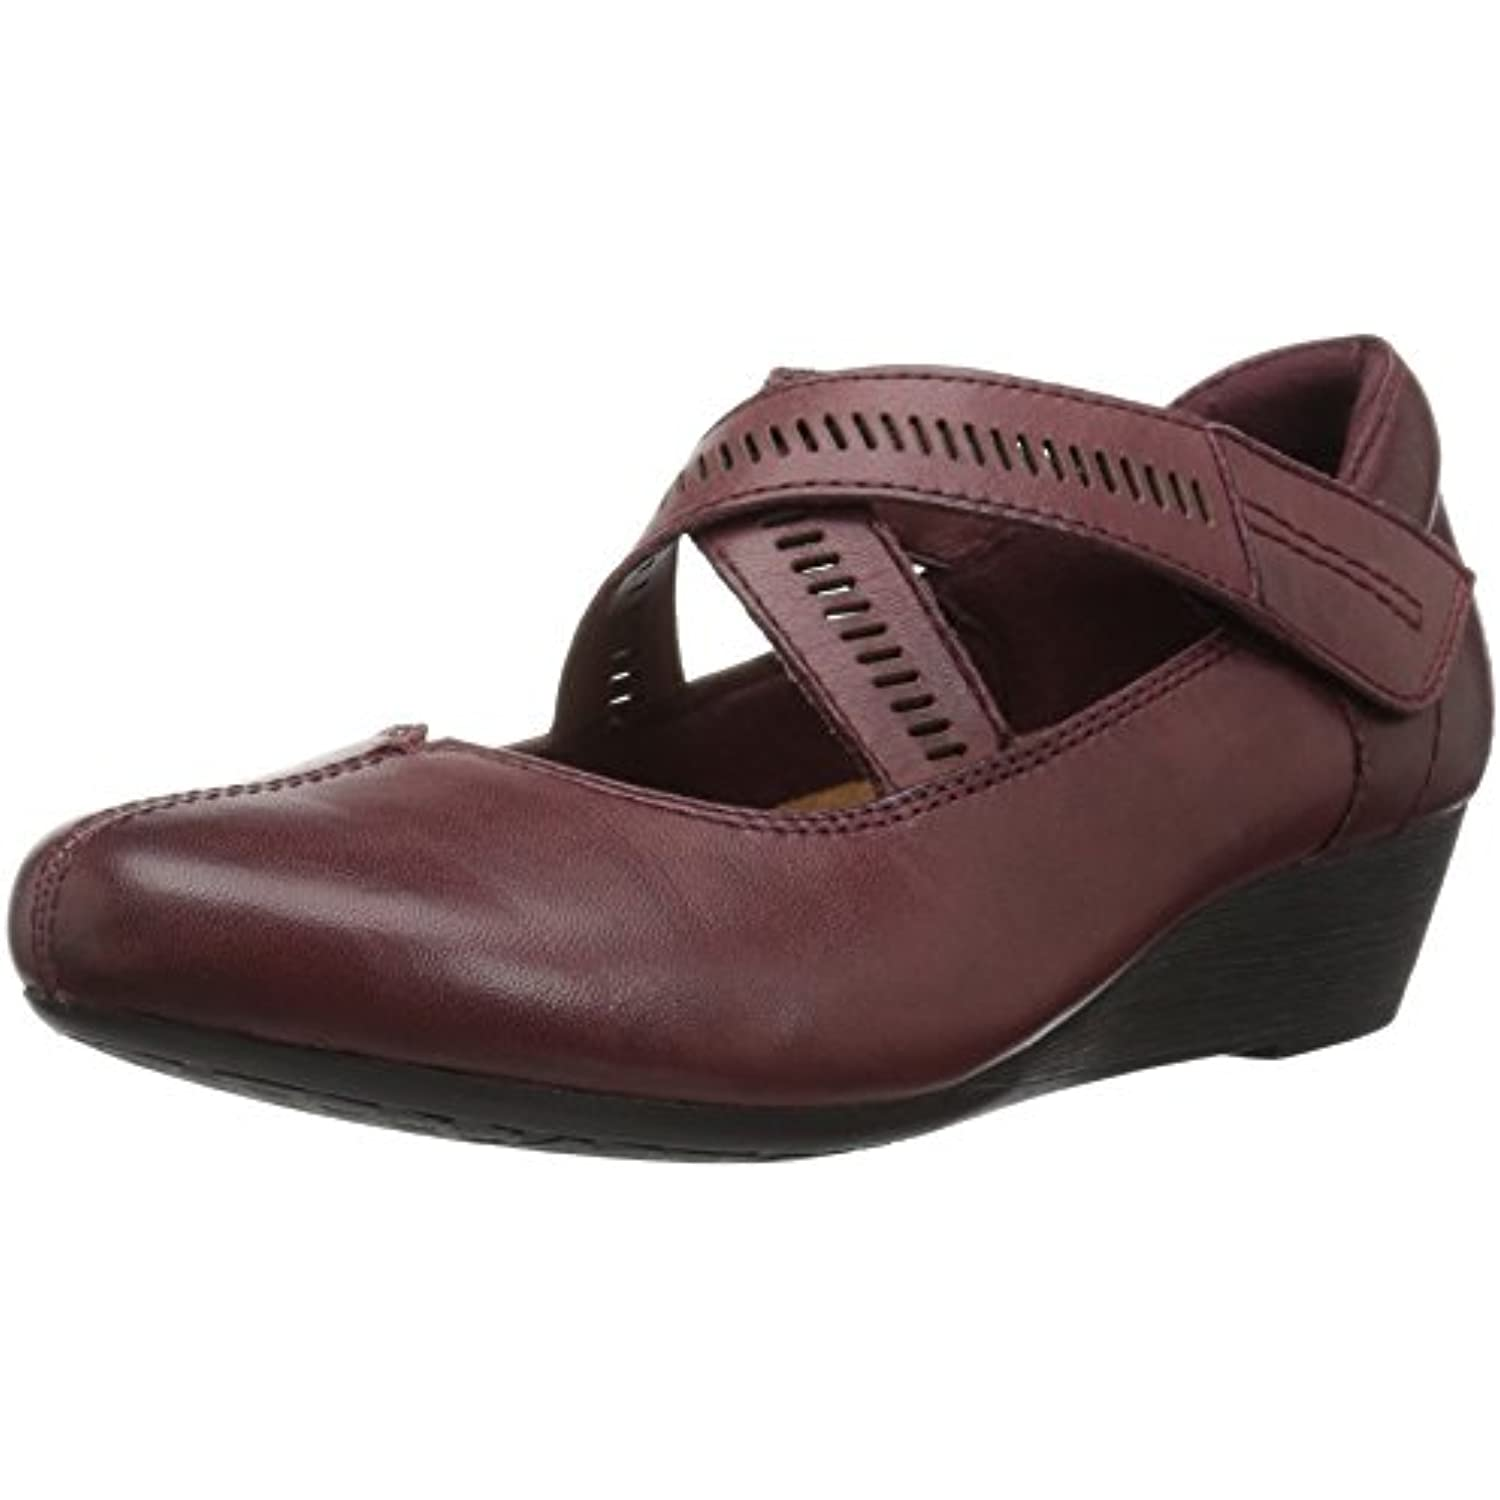 Rockport - Chaussures Janet-Ch pour Femme - - - B01N4RQ4RY - 97c2c6